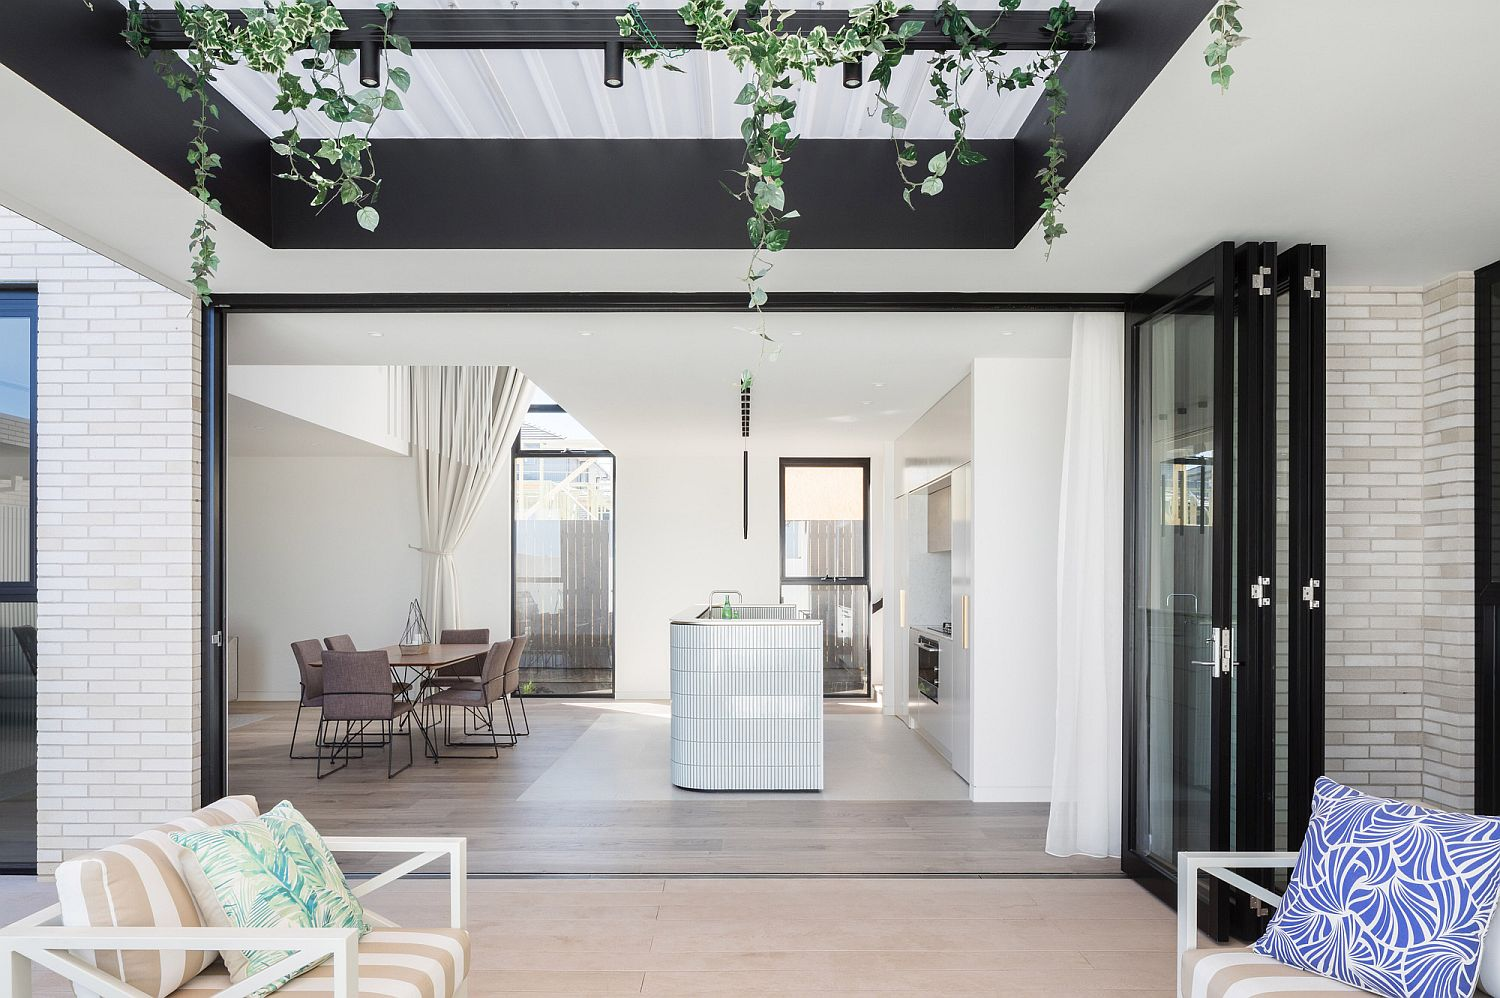 Folding glass doors are the perfect way to connect the kitchen with the deck outside